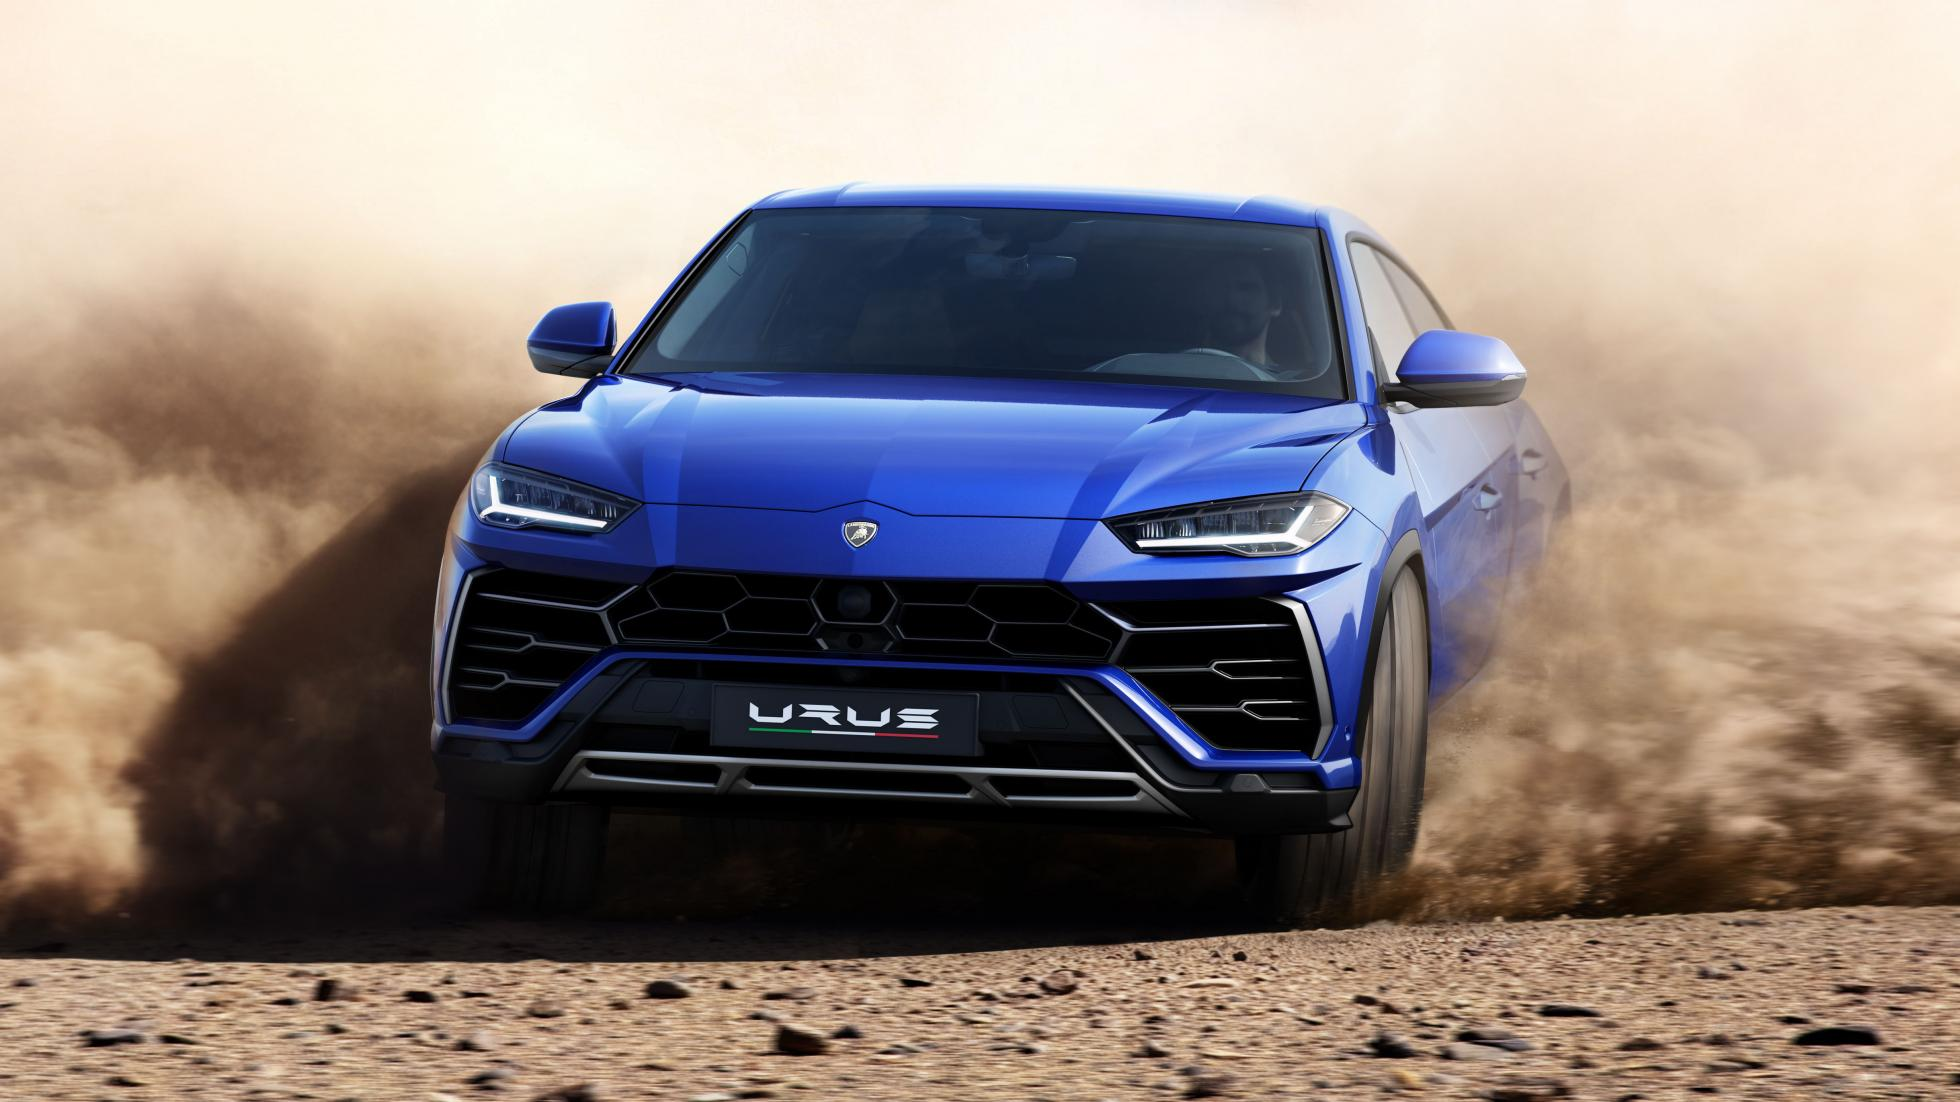 2018 Lamborghini Urus